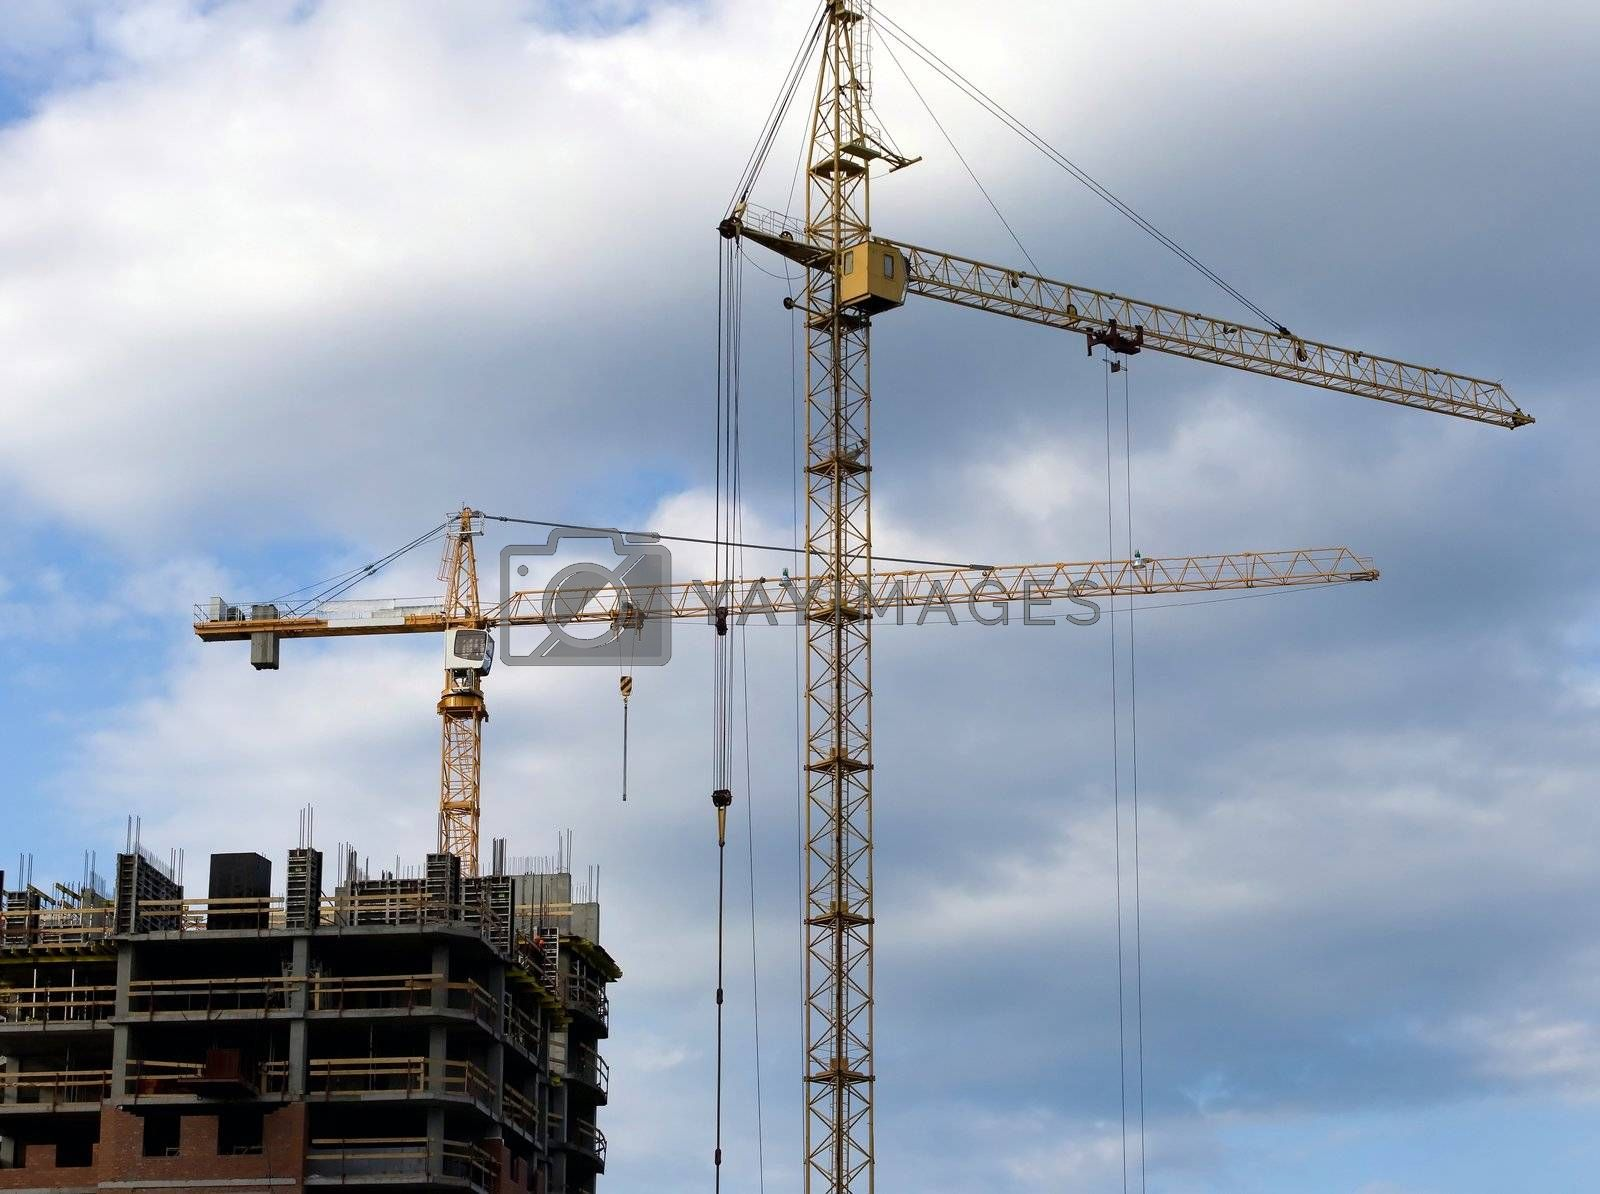 two cranes stand in front of a new building